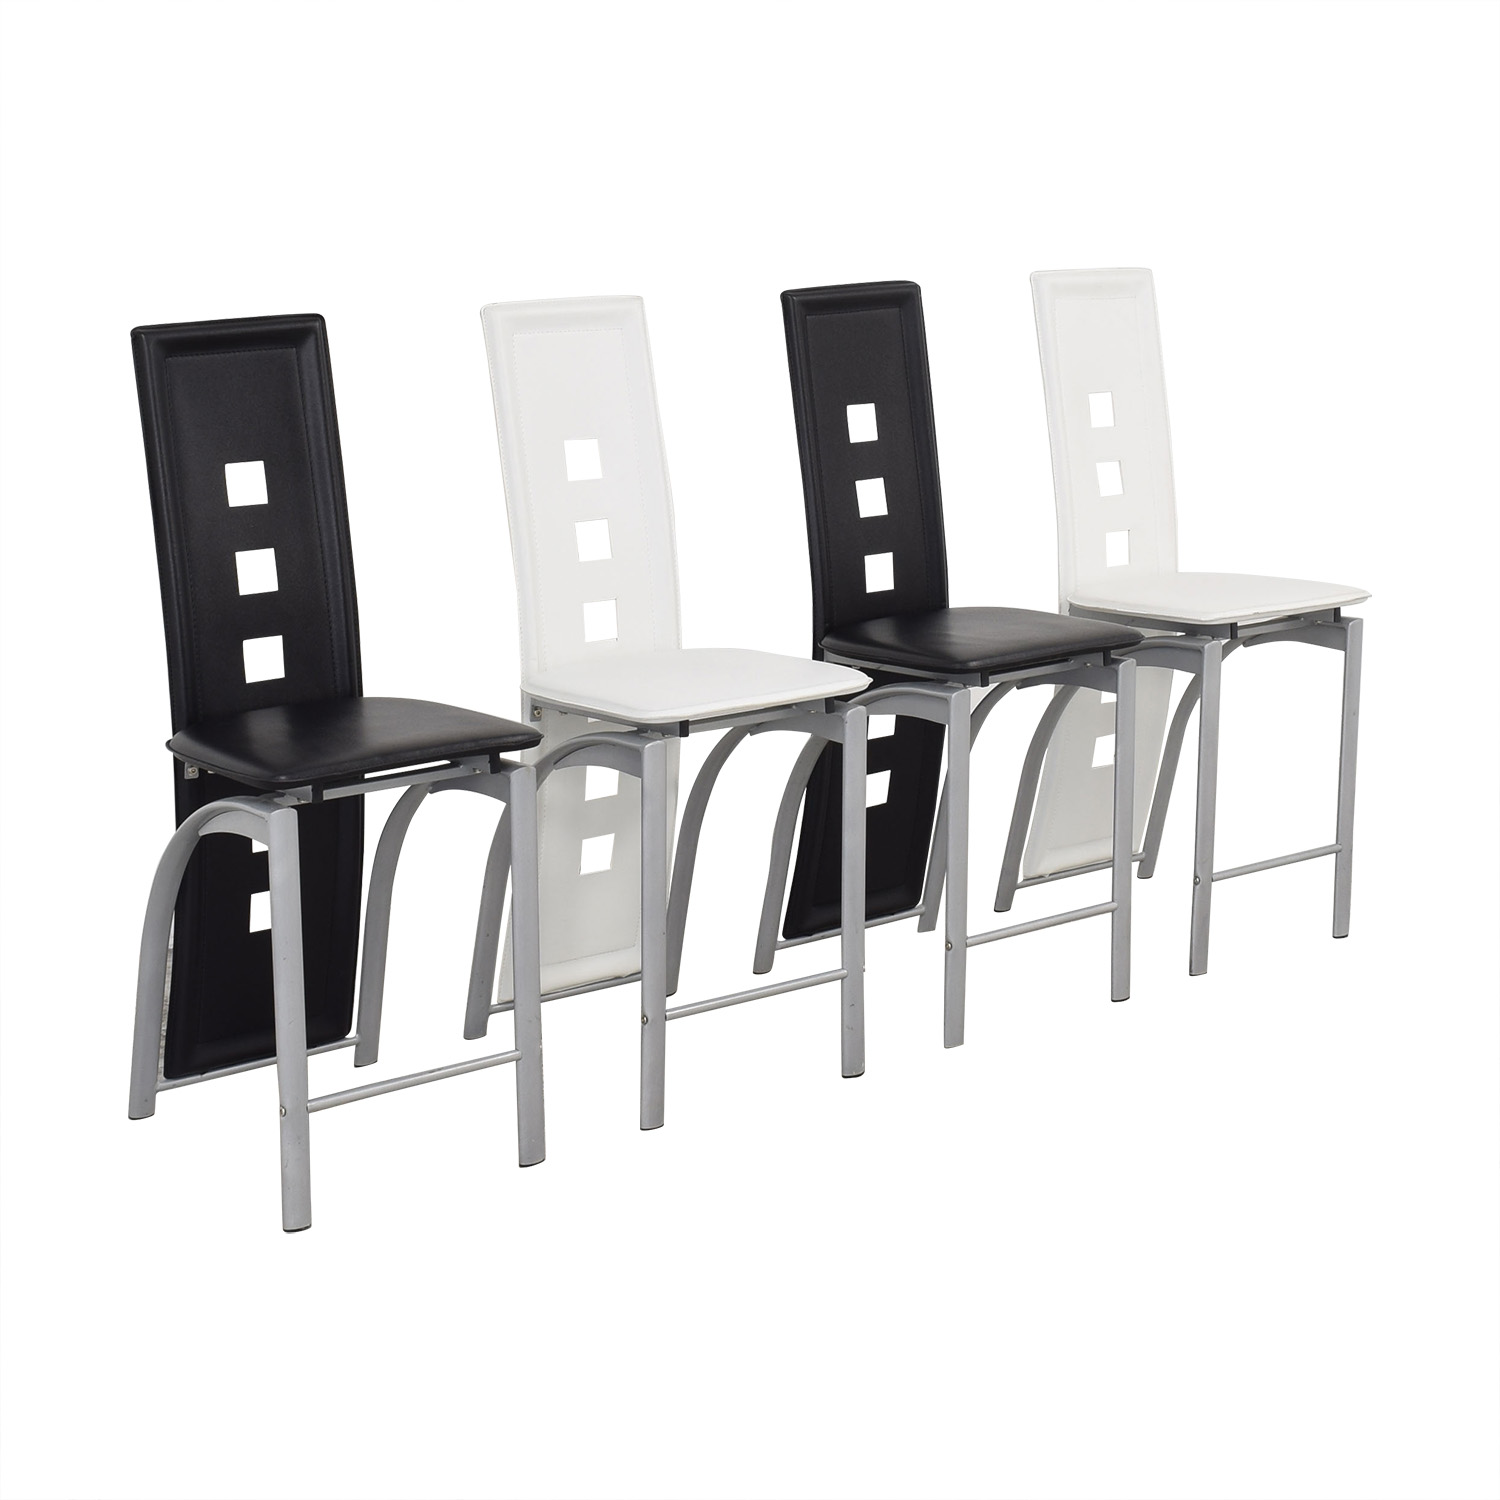 buy  Black and White High Back Side Dining Chairs online